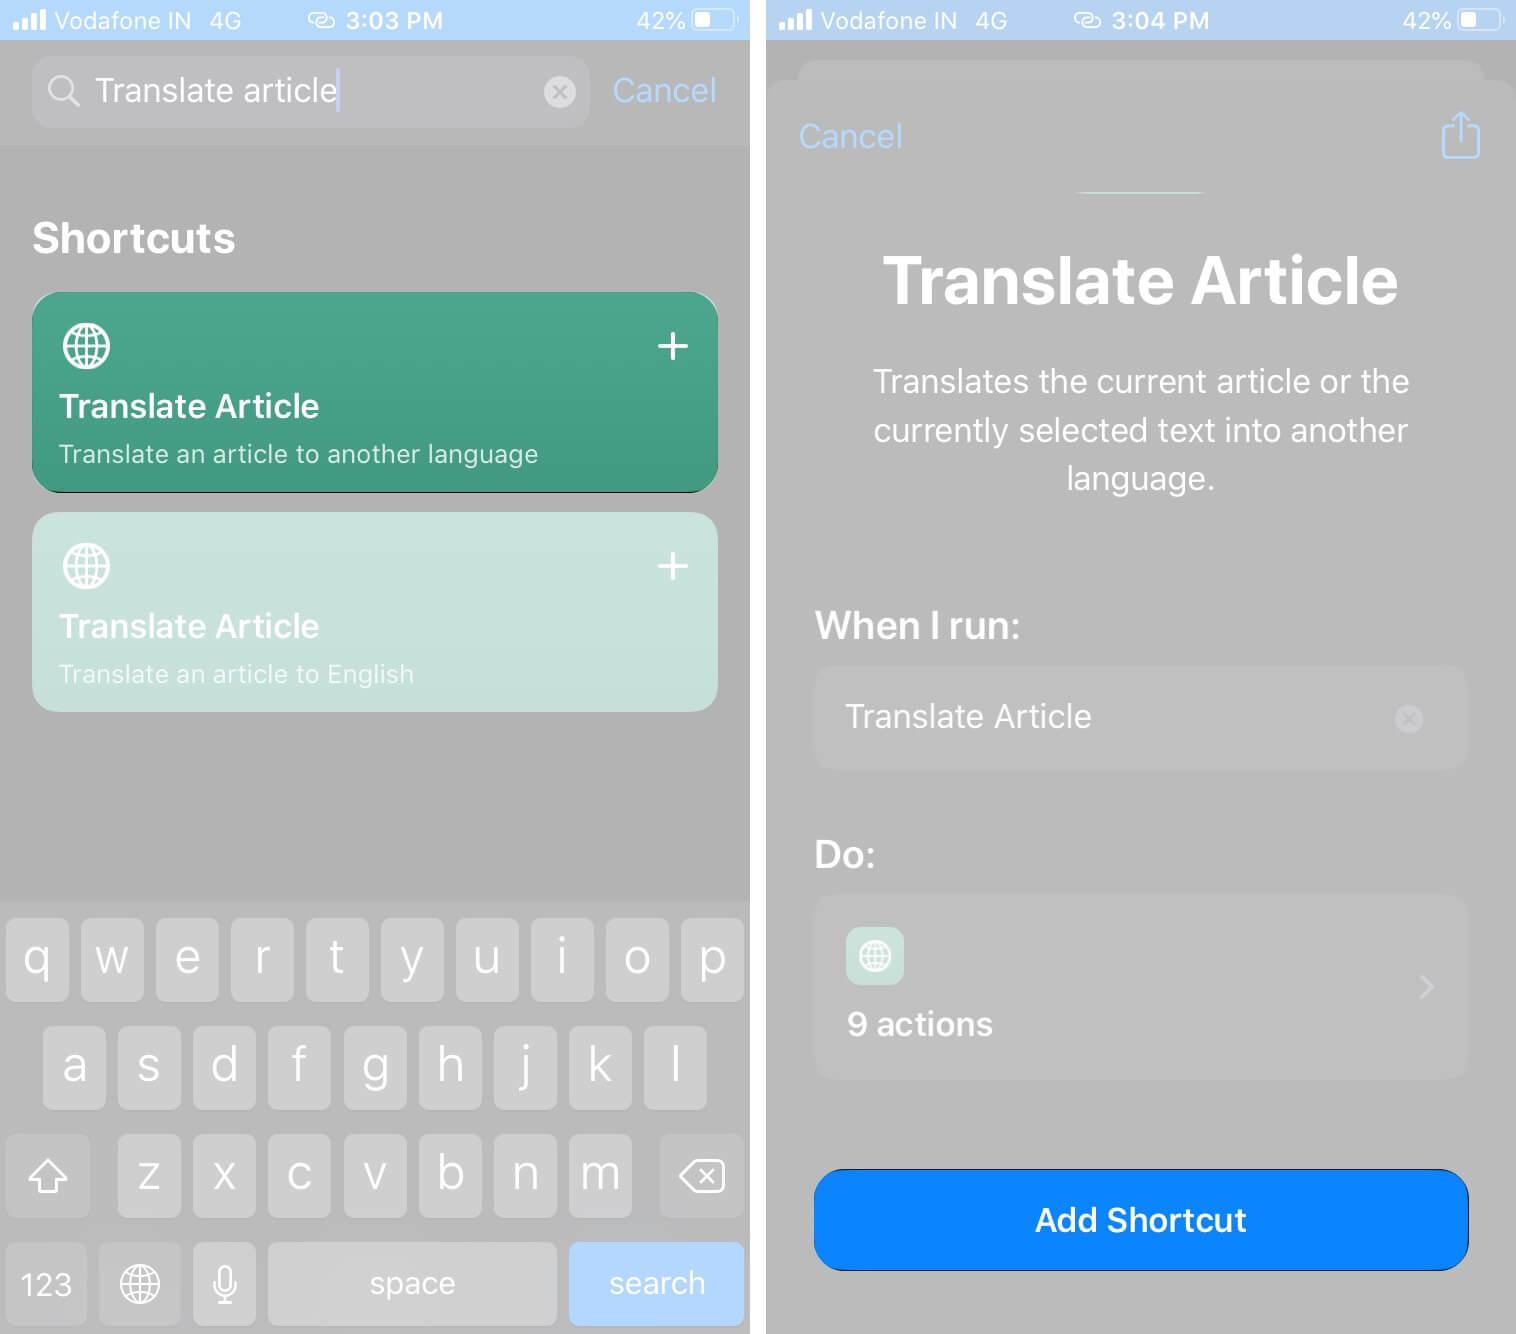 Tap on Translate Article and Then Tap on Add Shortcut